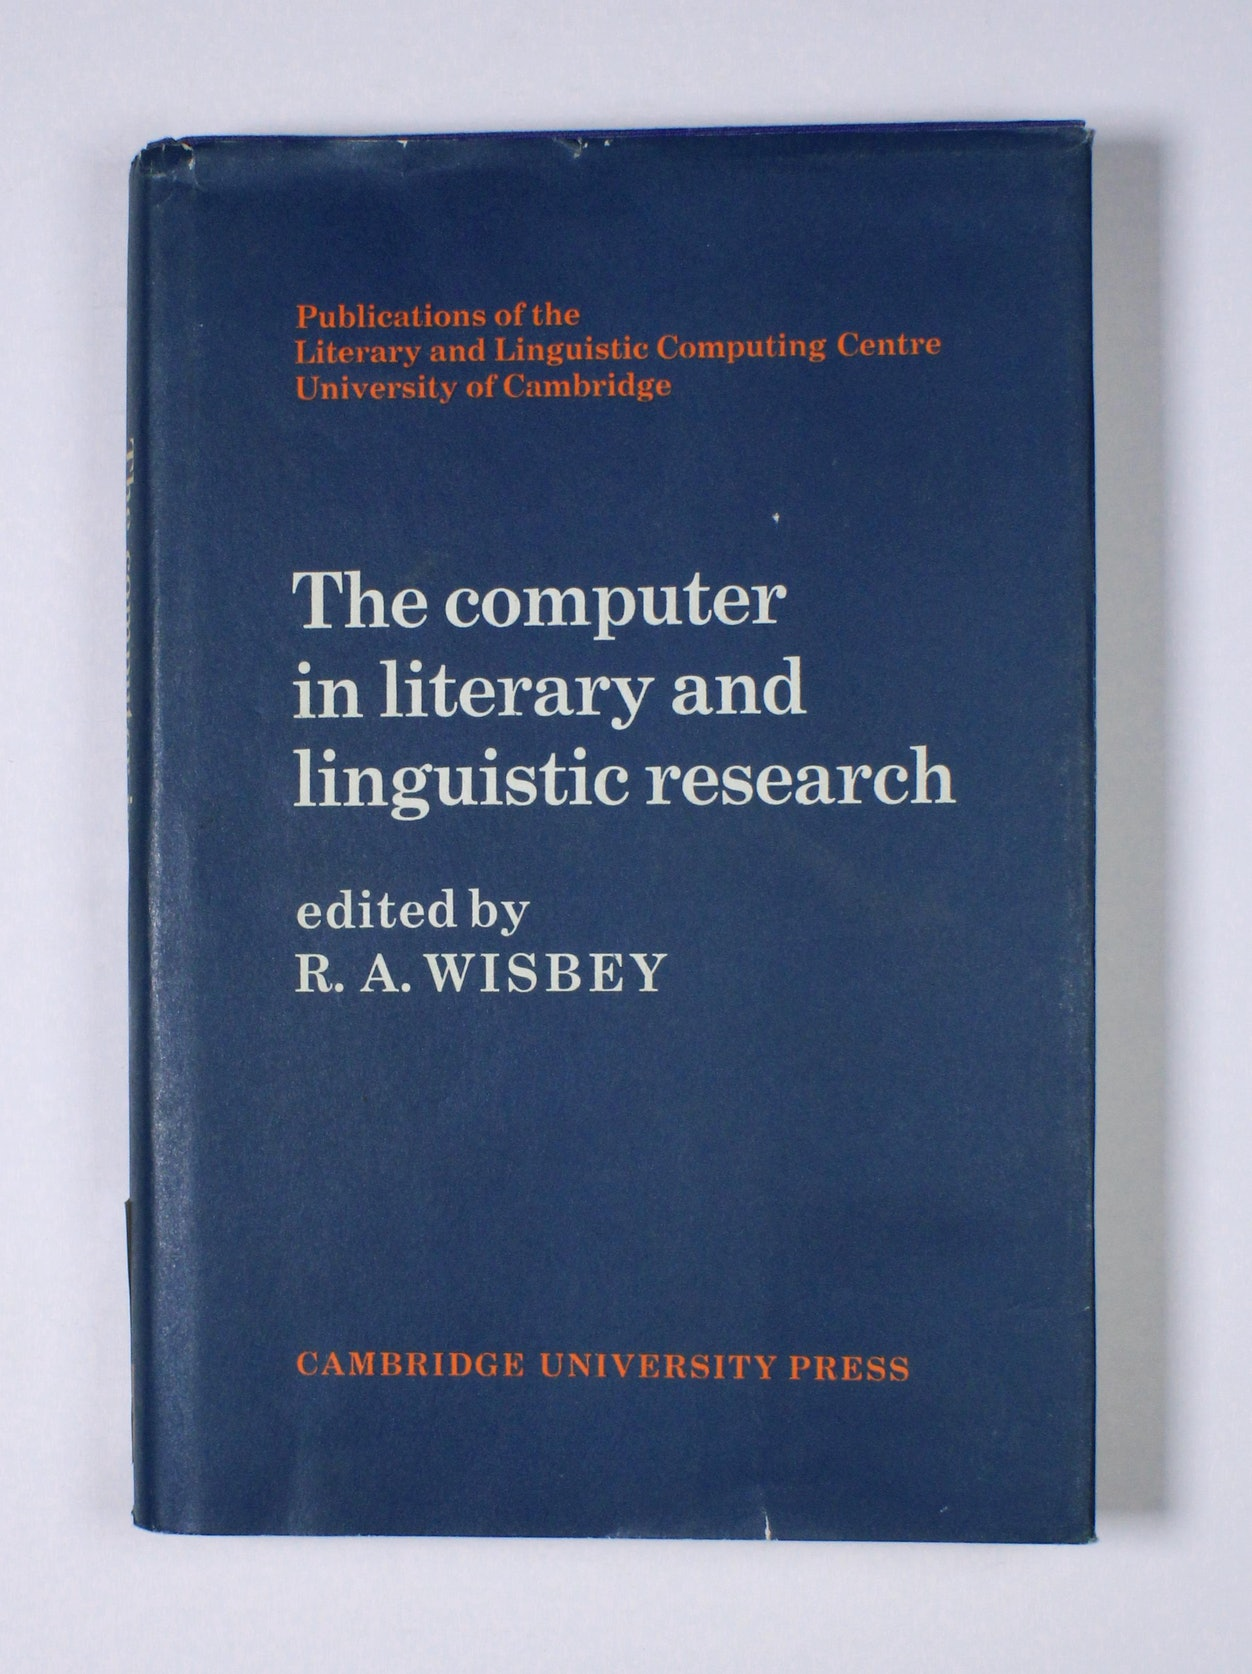 The Computer in Literary and Linguistic Research: Papers from a Cambridge Symposium